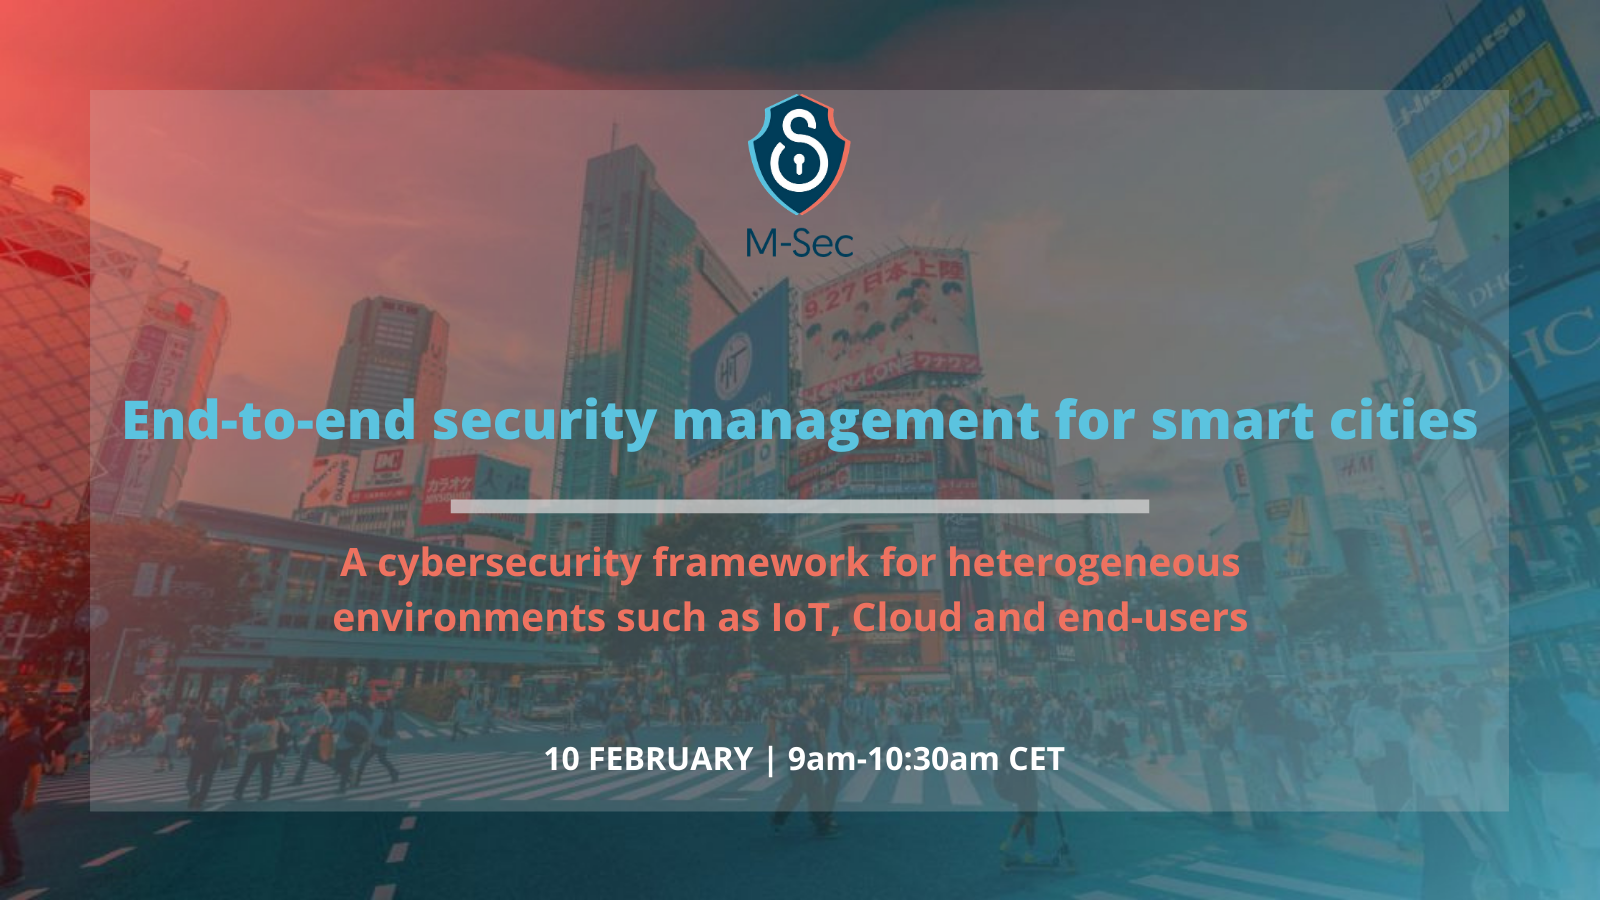 End-to-end security management for smart cities. Want to know more?